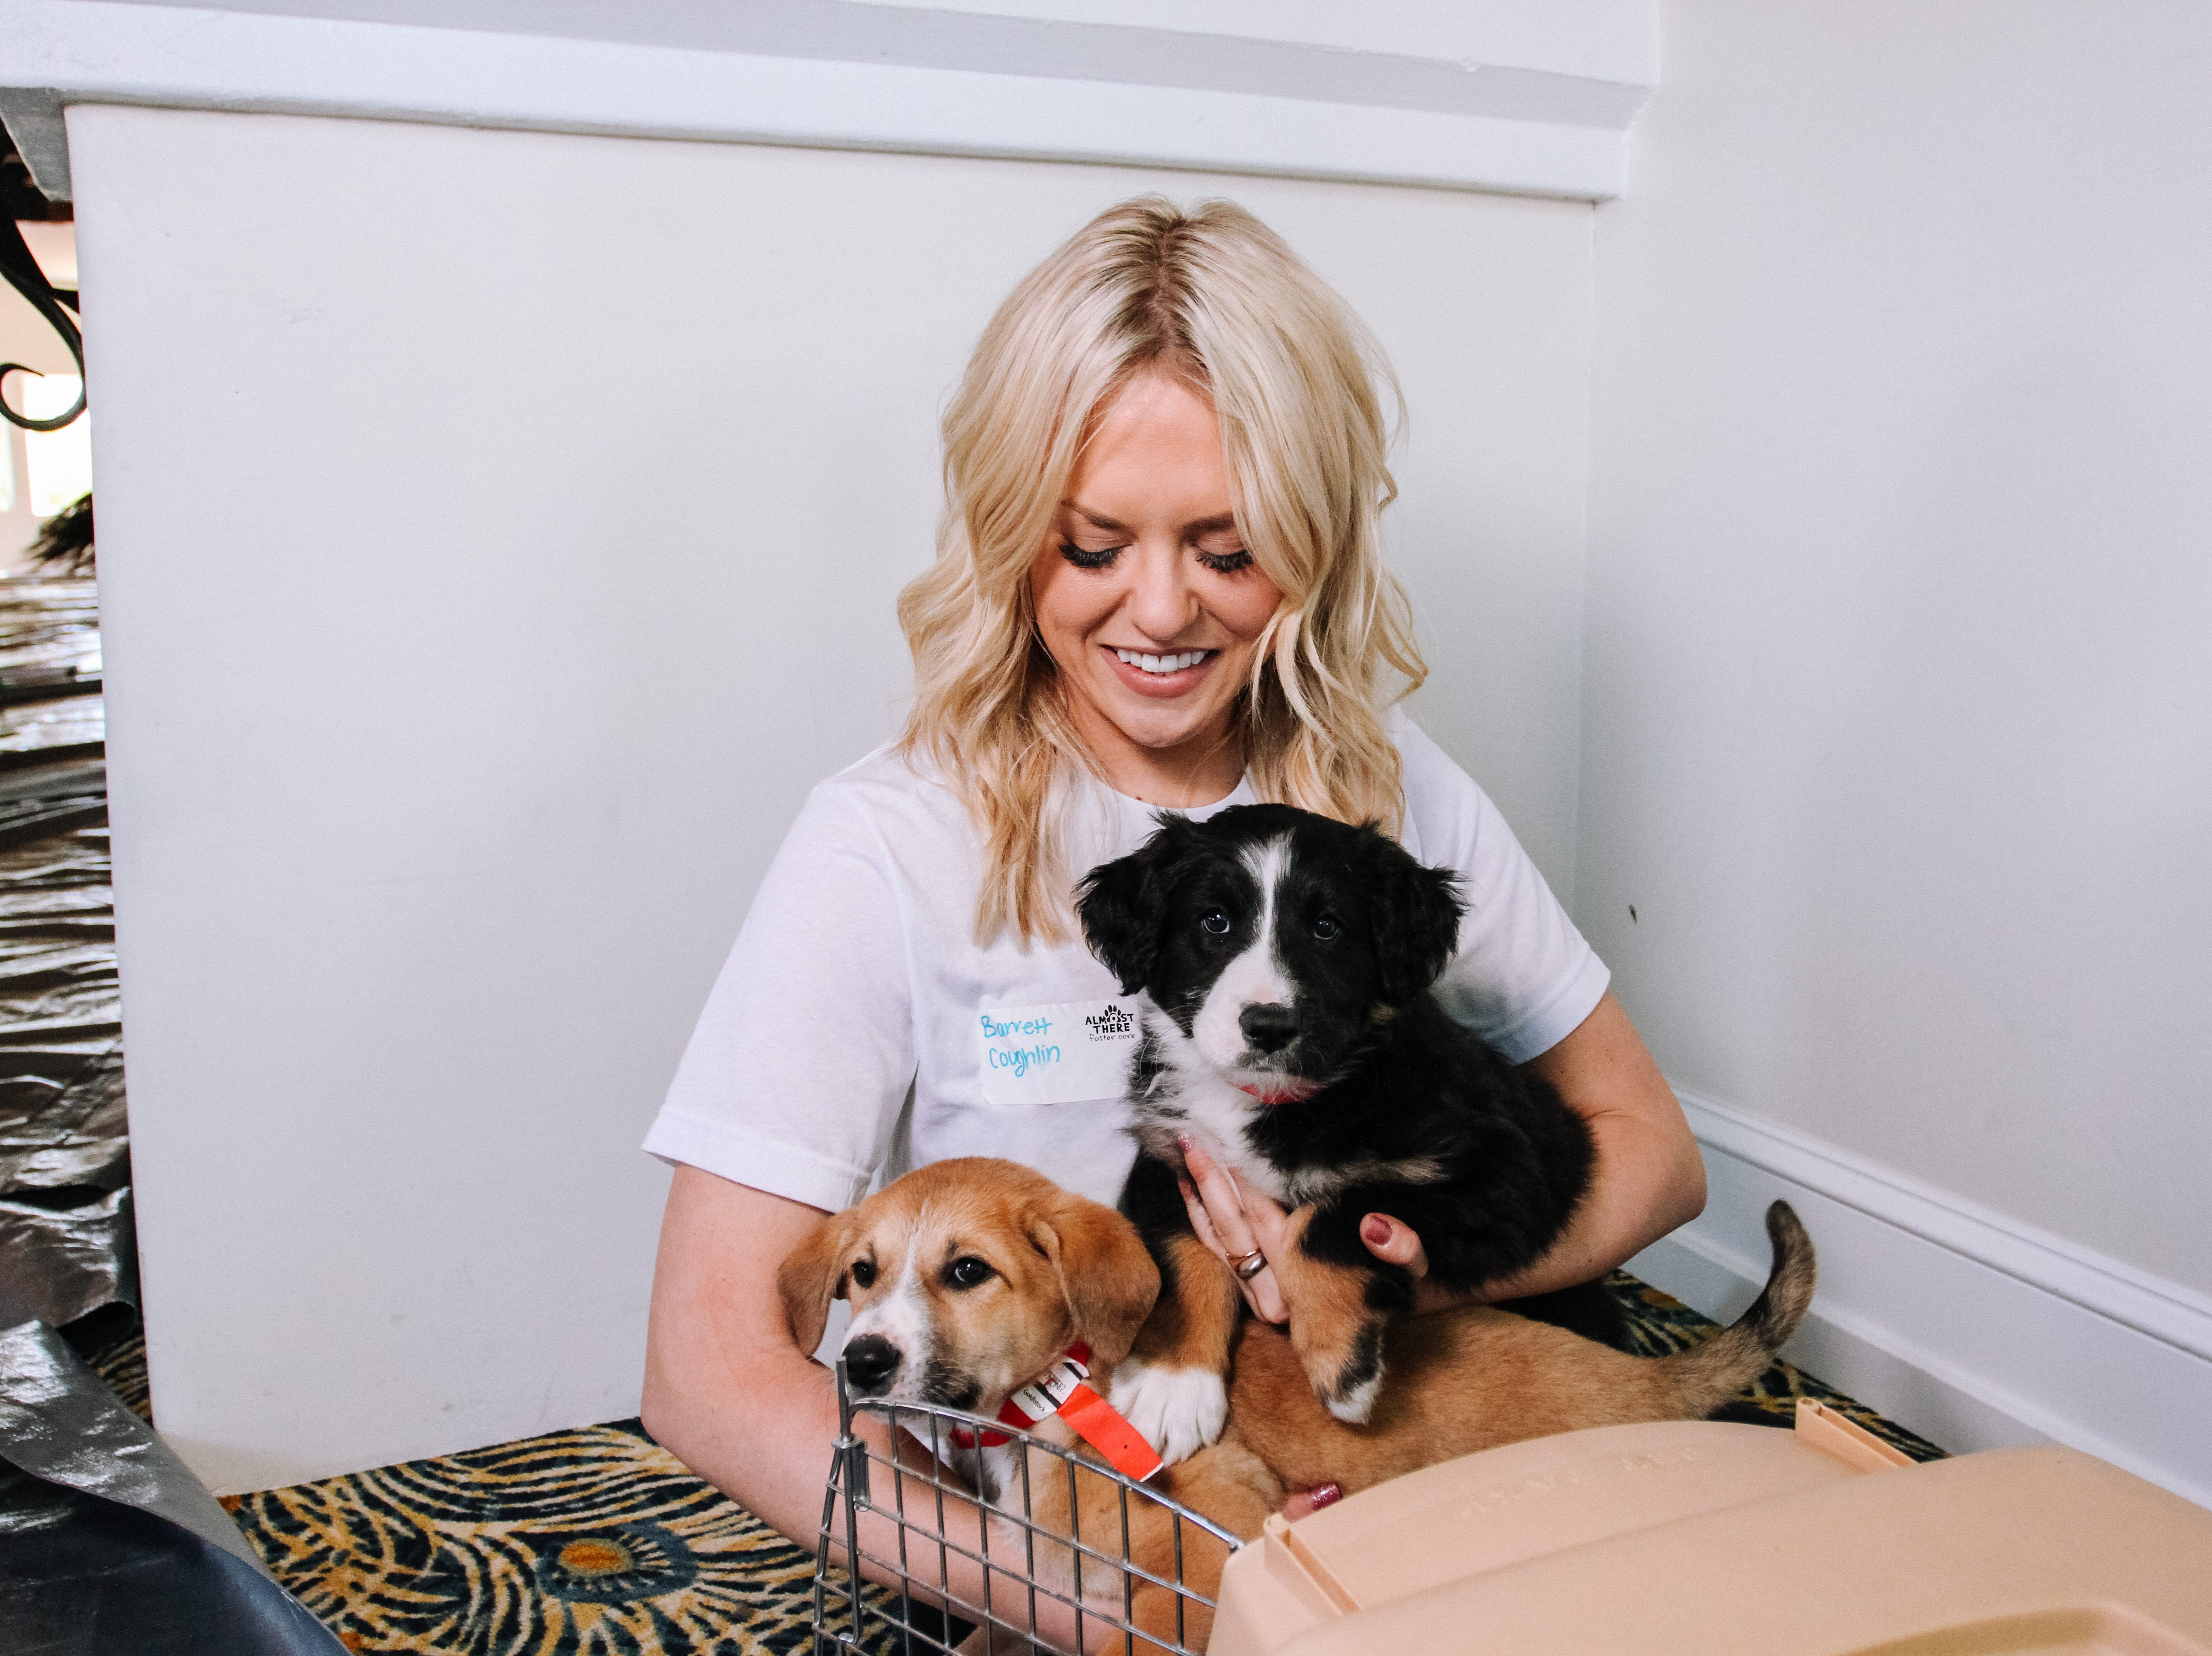 Barrett Couhlin, a volunteer with Almost There Foster Care, puts puppies in their kennel at Puppies, Pilates and Prosecco, an event hosted by Almost There Foster Care at the Wrigley Mansion in Phoenix on April 13, 2019.